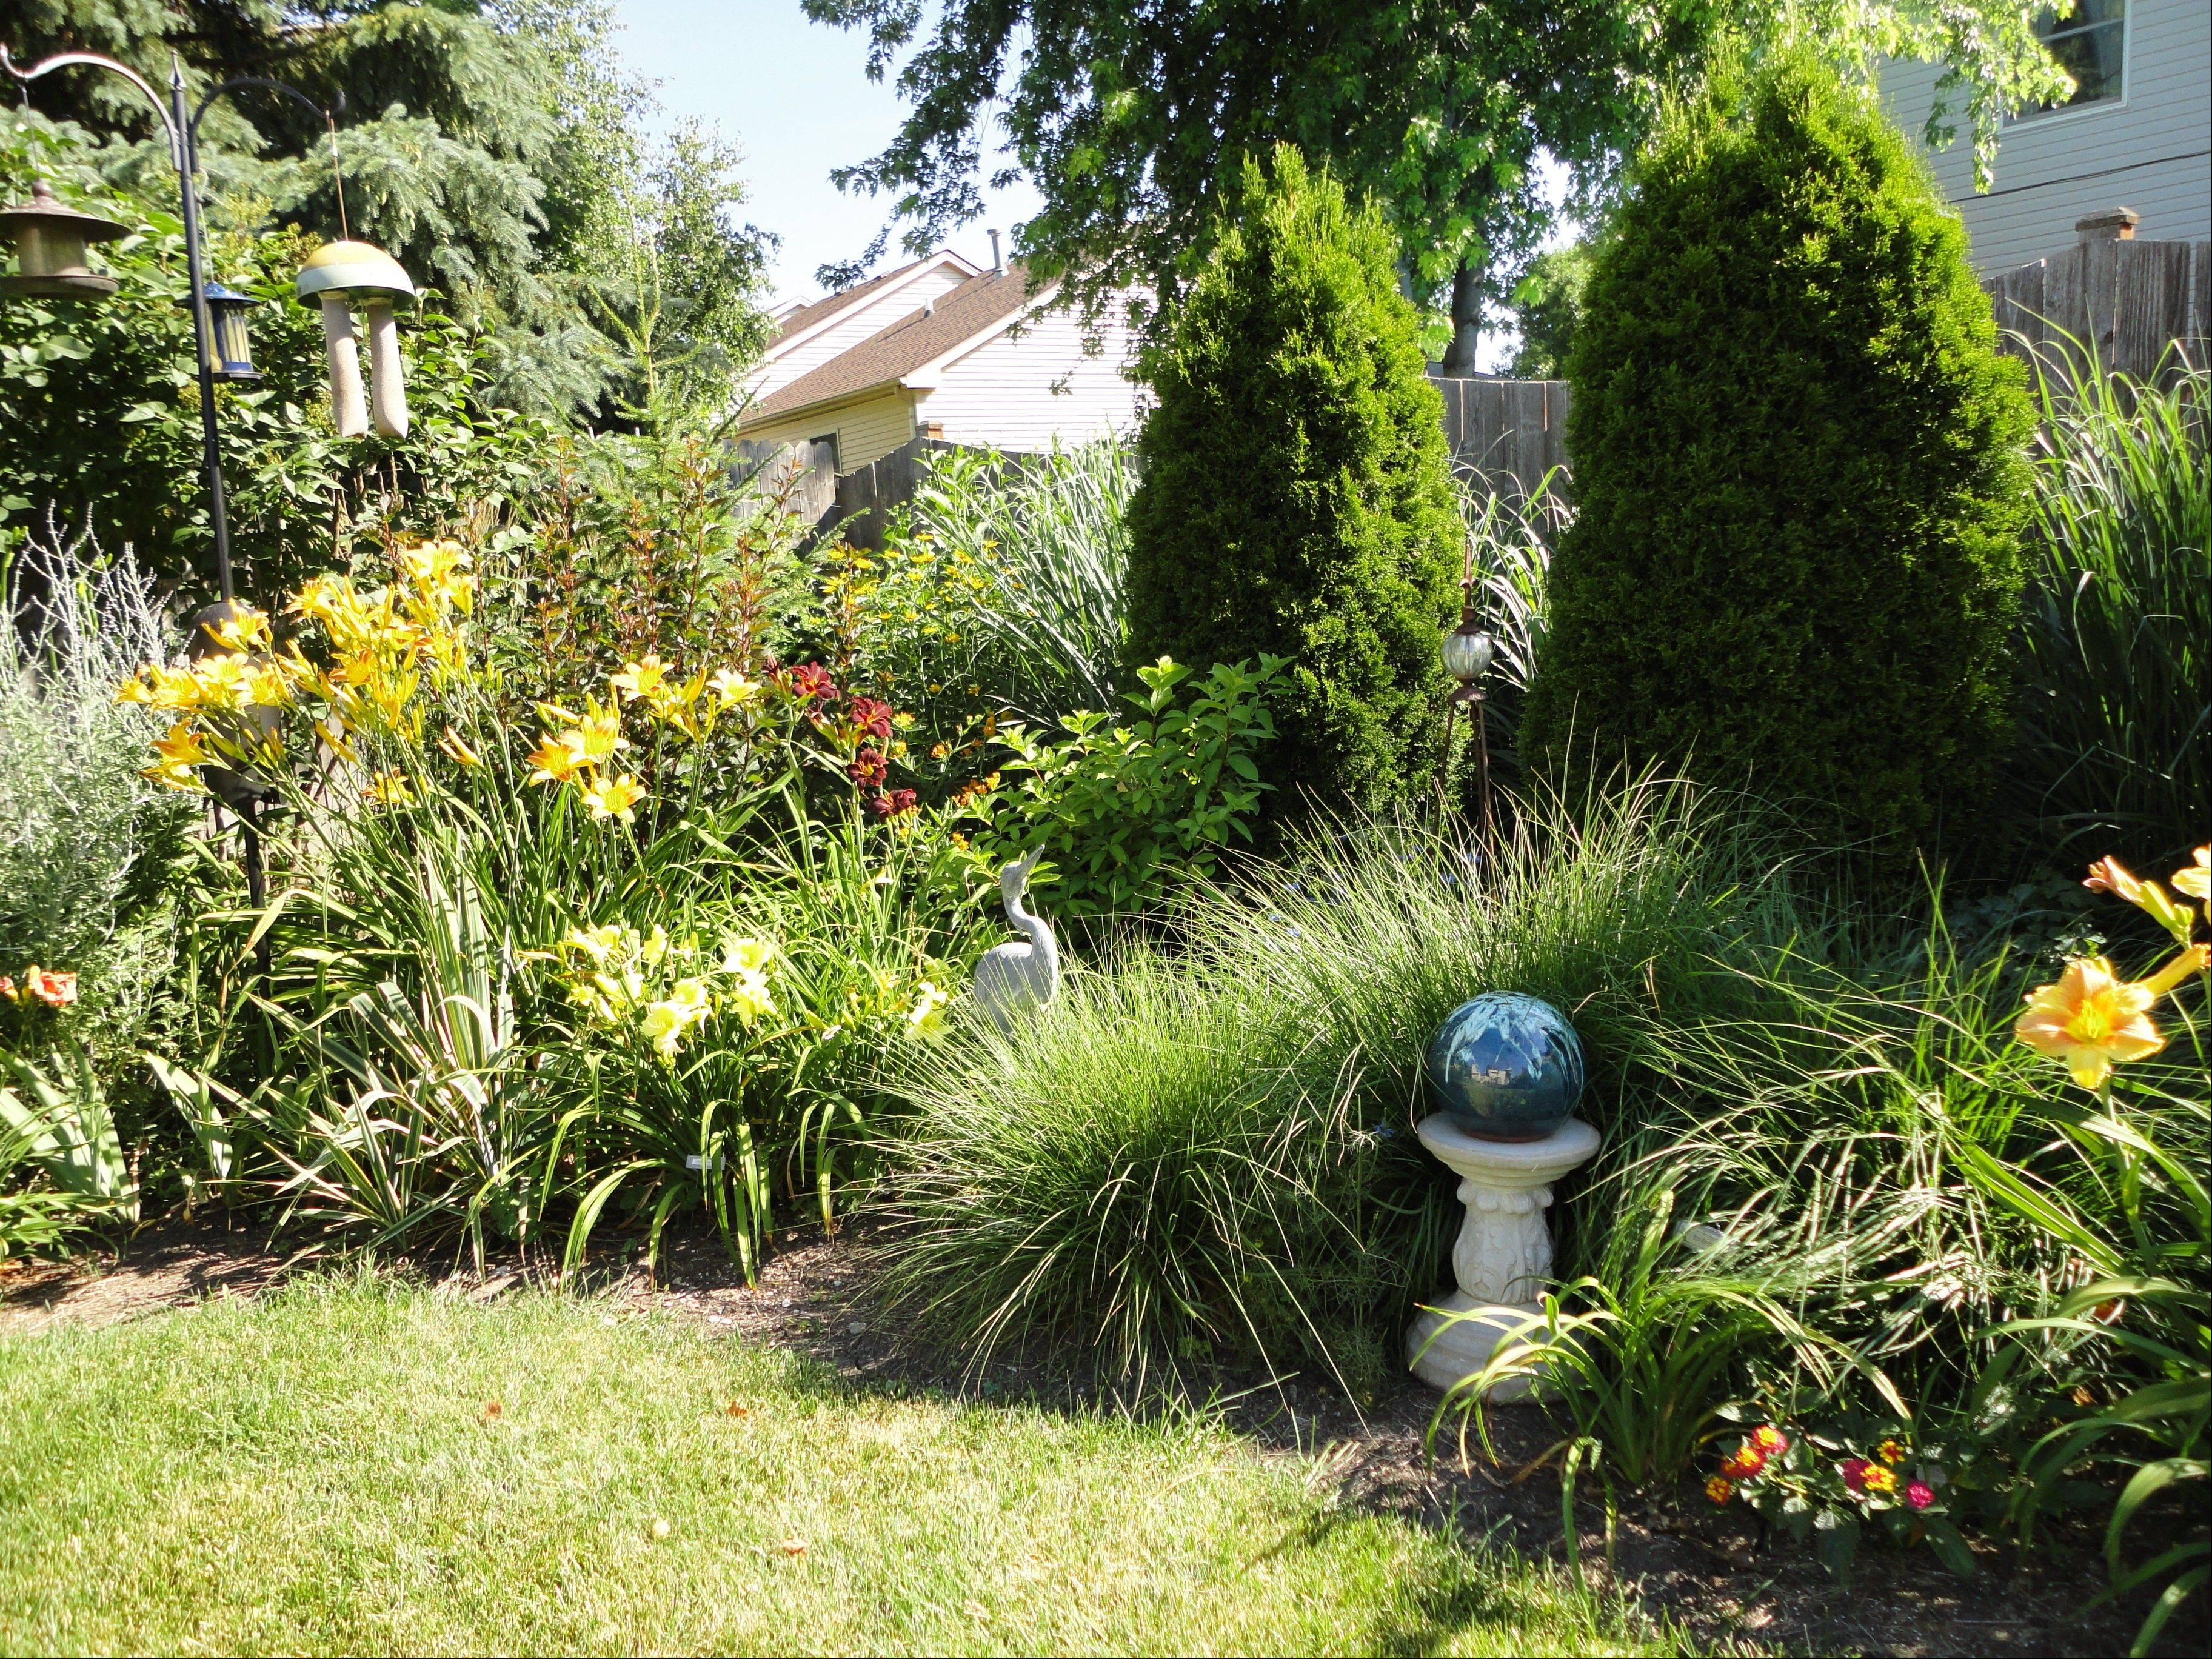 The garden of Jean Pechtel at 597 N. Lyle Ave., Elgin, will be featured in the Elgin Area American Association of University Women's garden walk, set for Saturday, June 23.